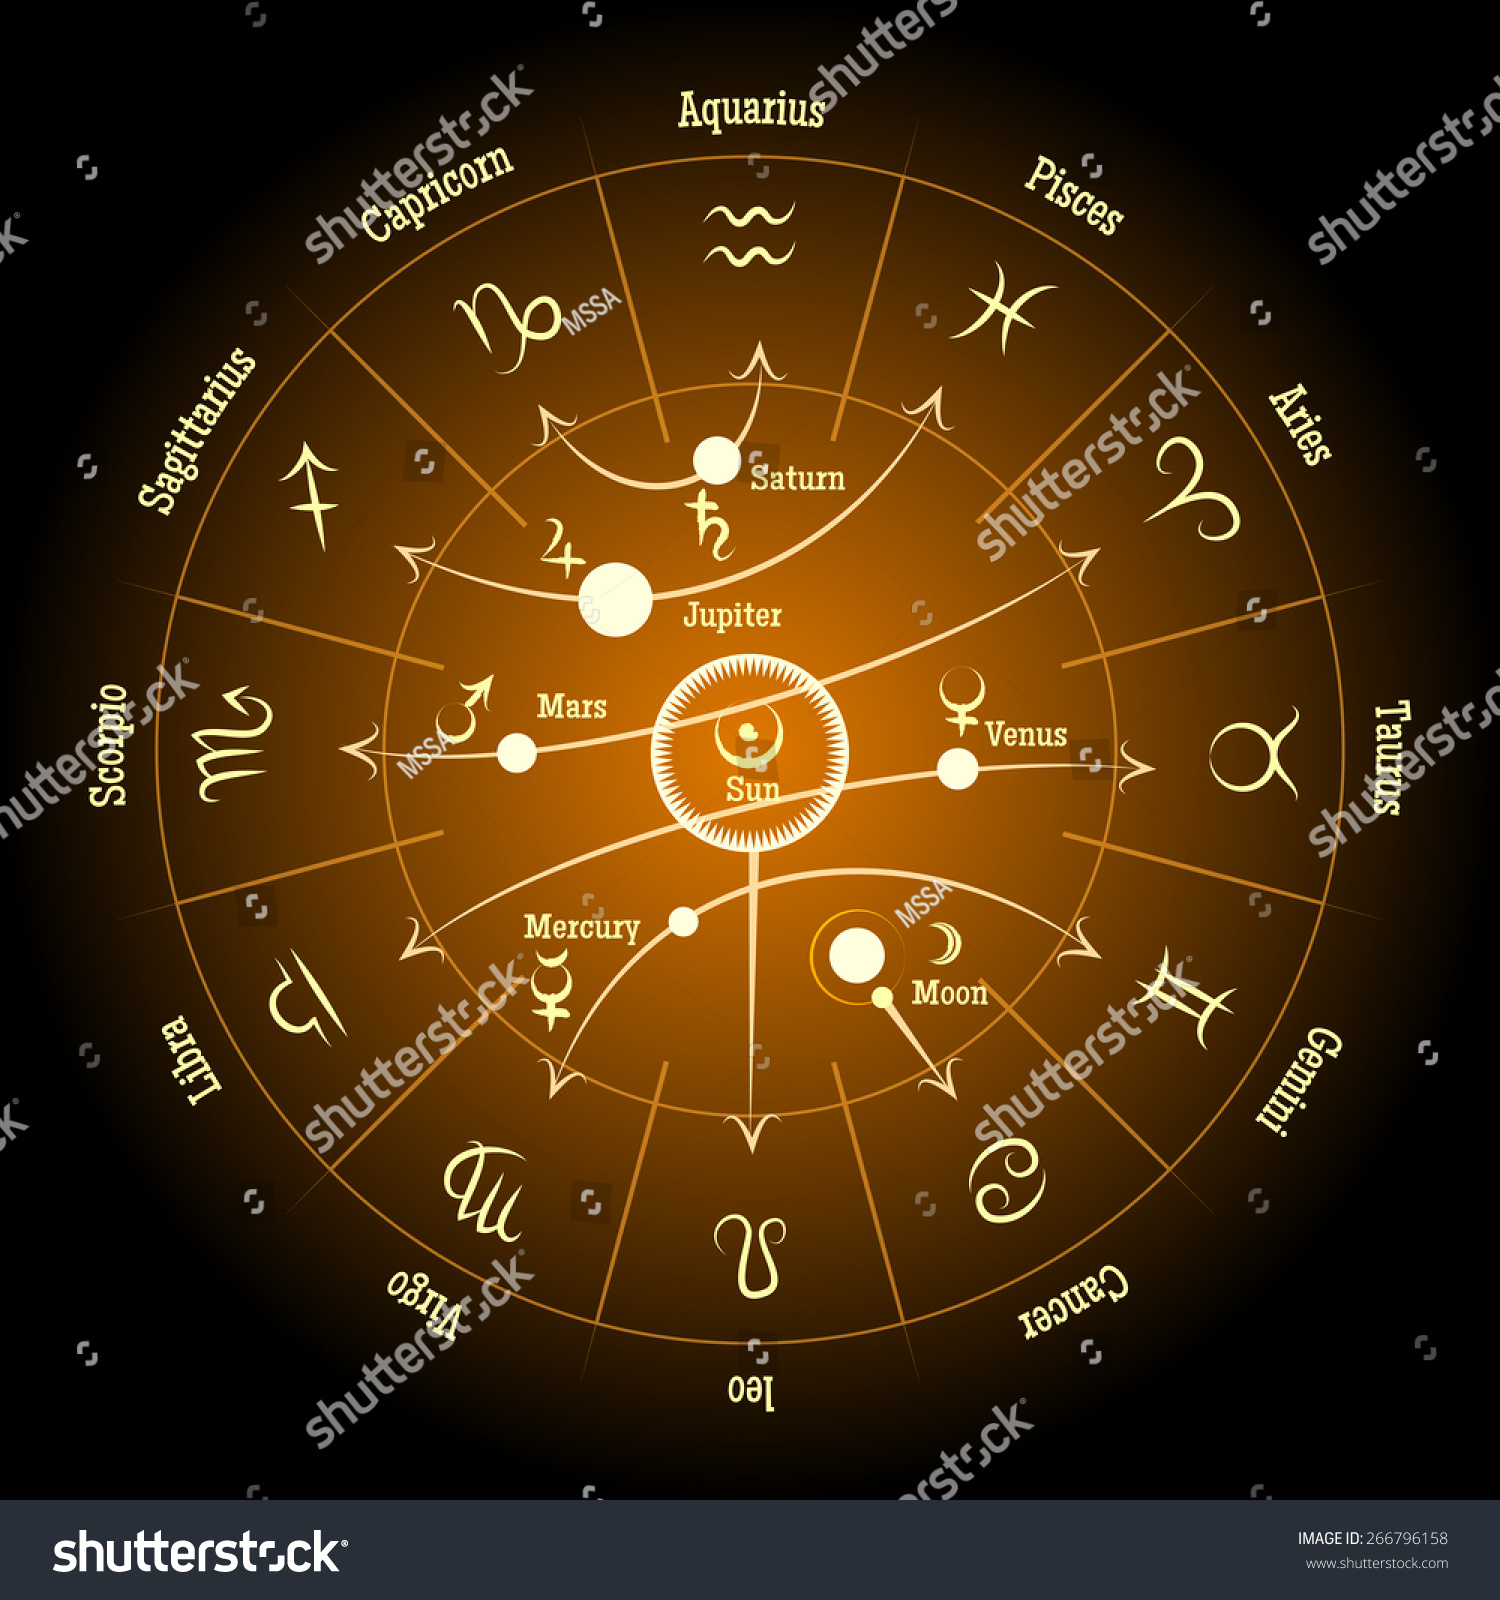 Astrological Zodiac Planet Signs Planetary Influence Stock ...